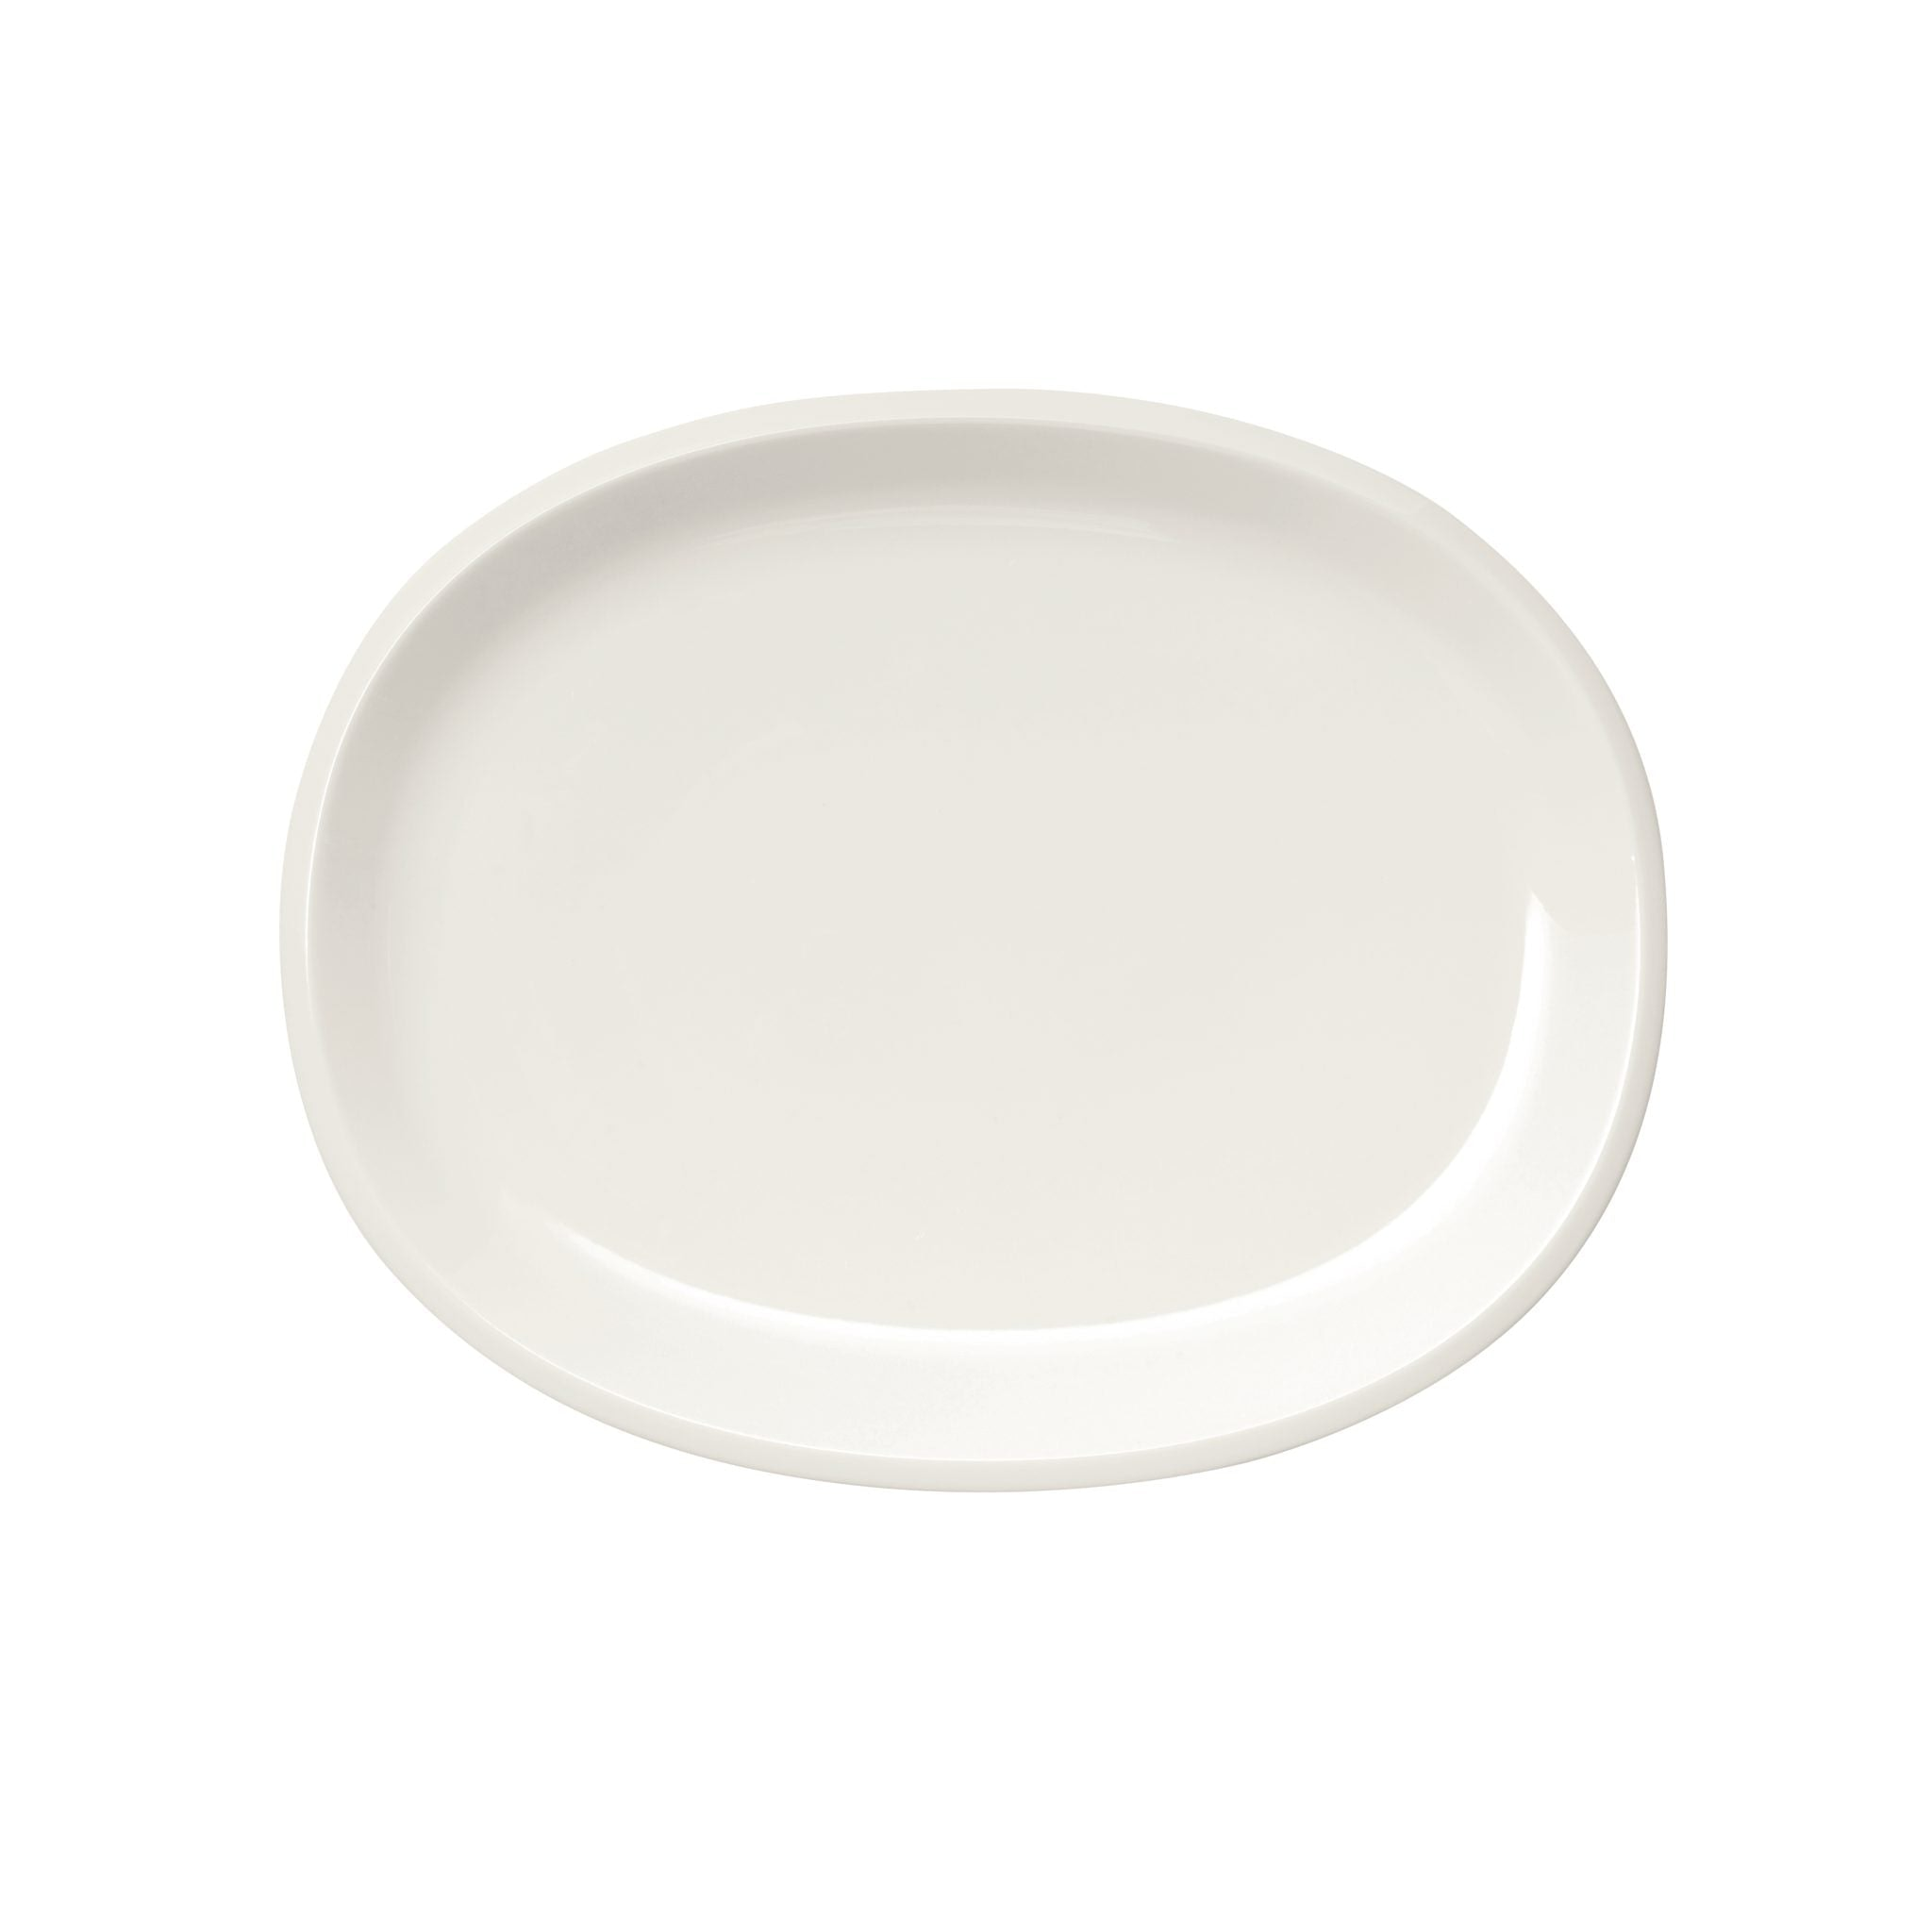 Raami Oval Serving Platter by Iittala